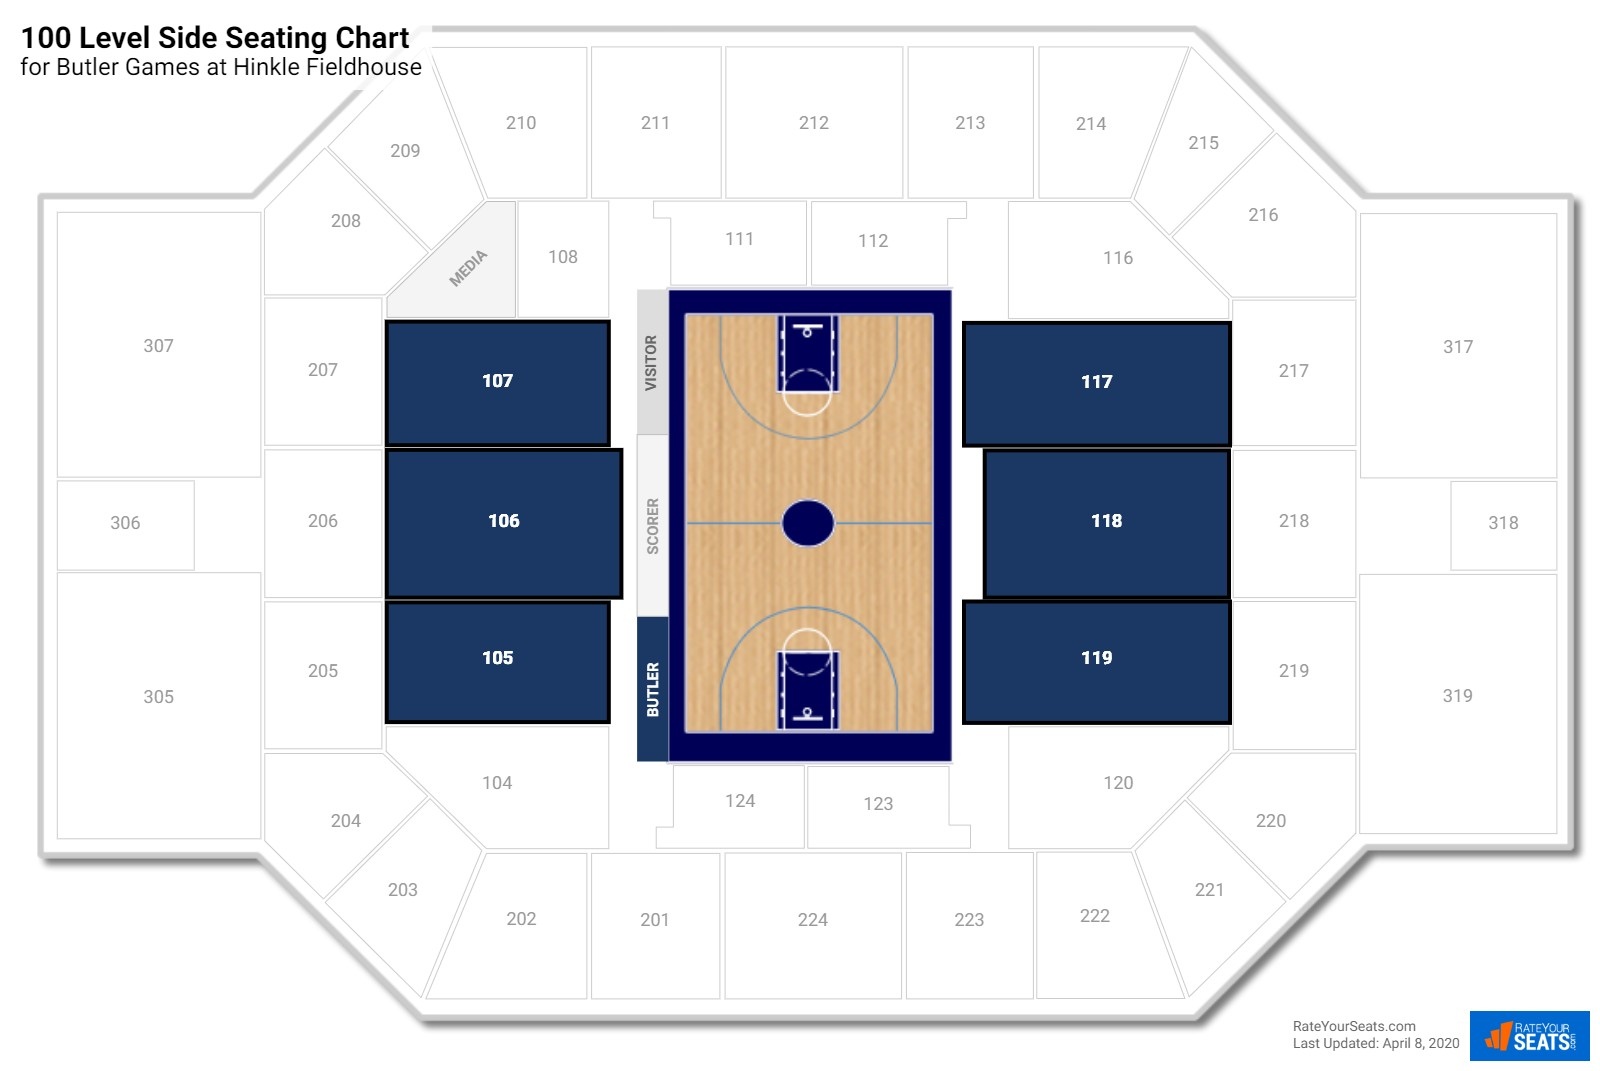 Hinkle Fieldhouse Lower Side seating chart